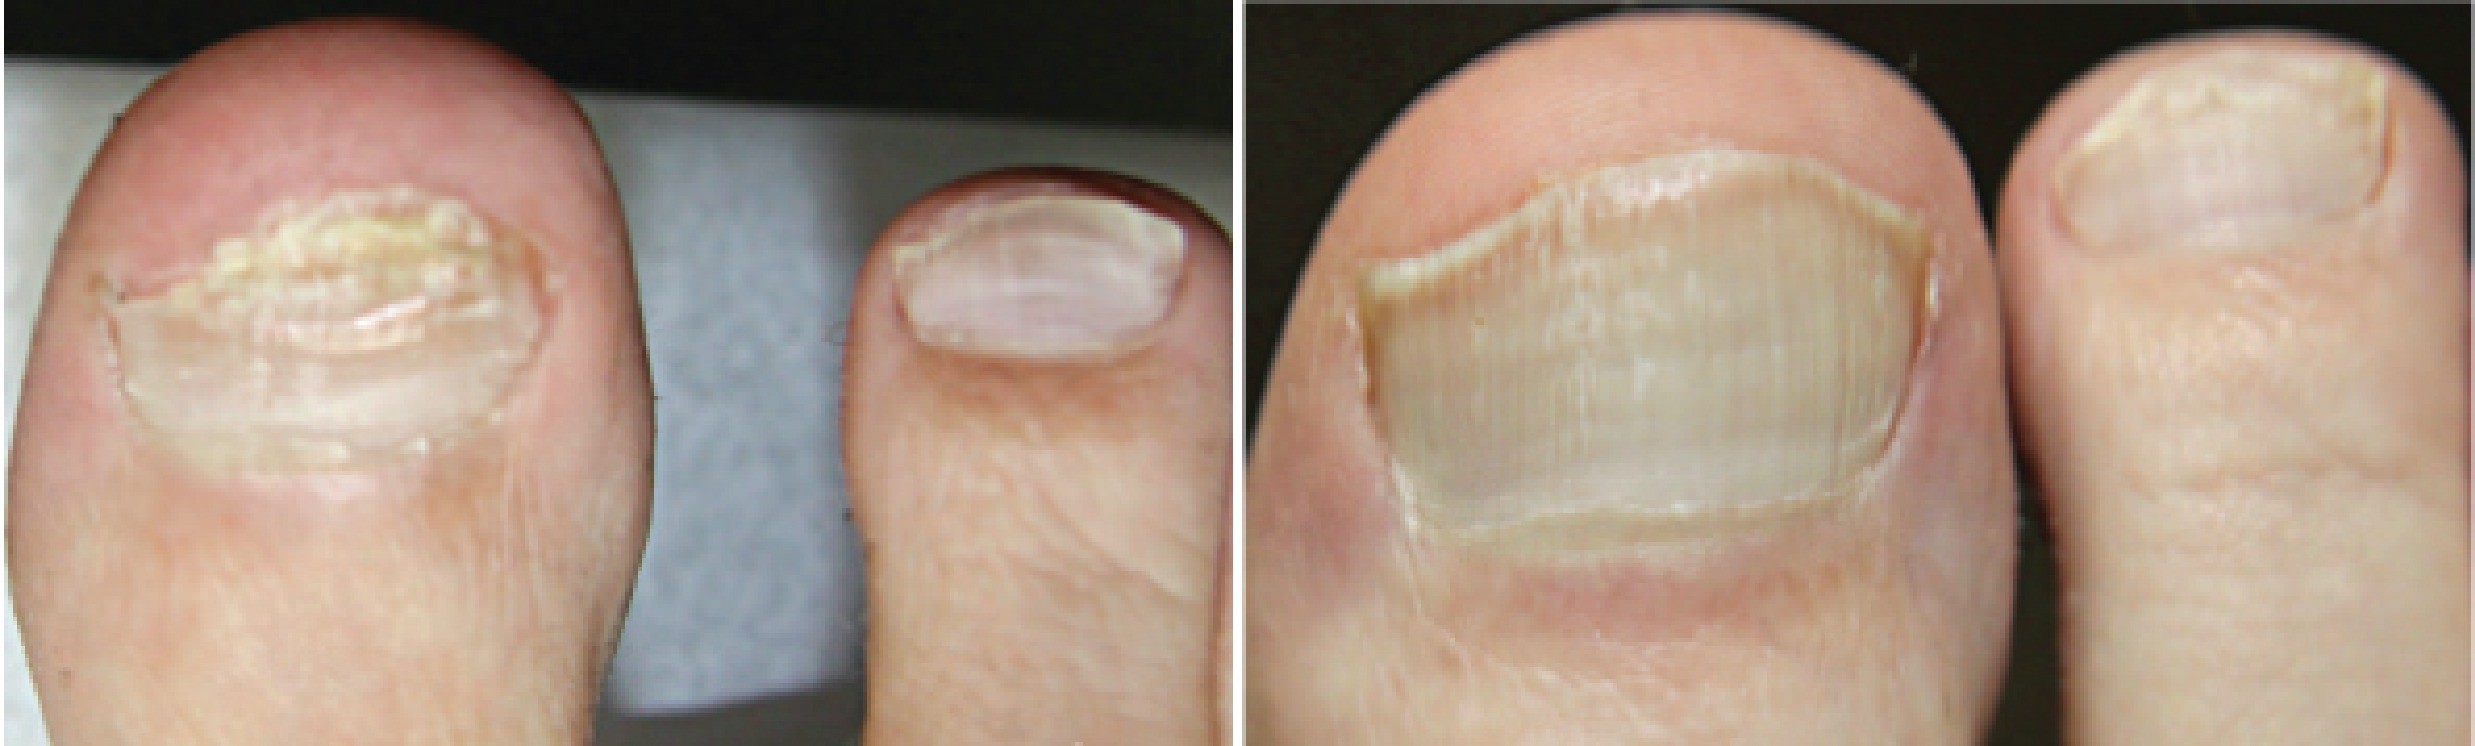 before and after of toe nail fungus large toes